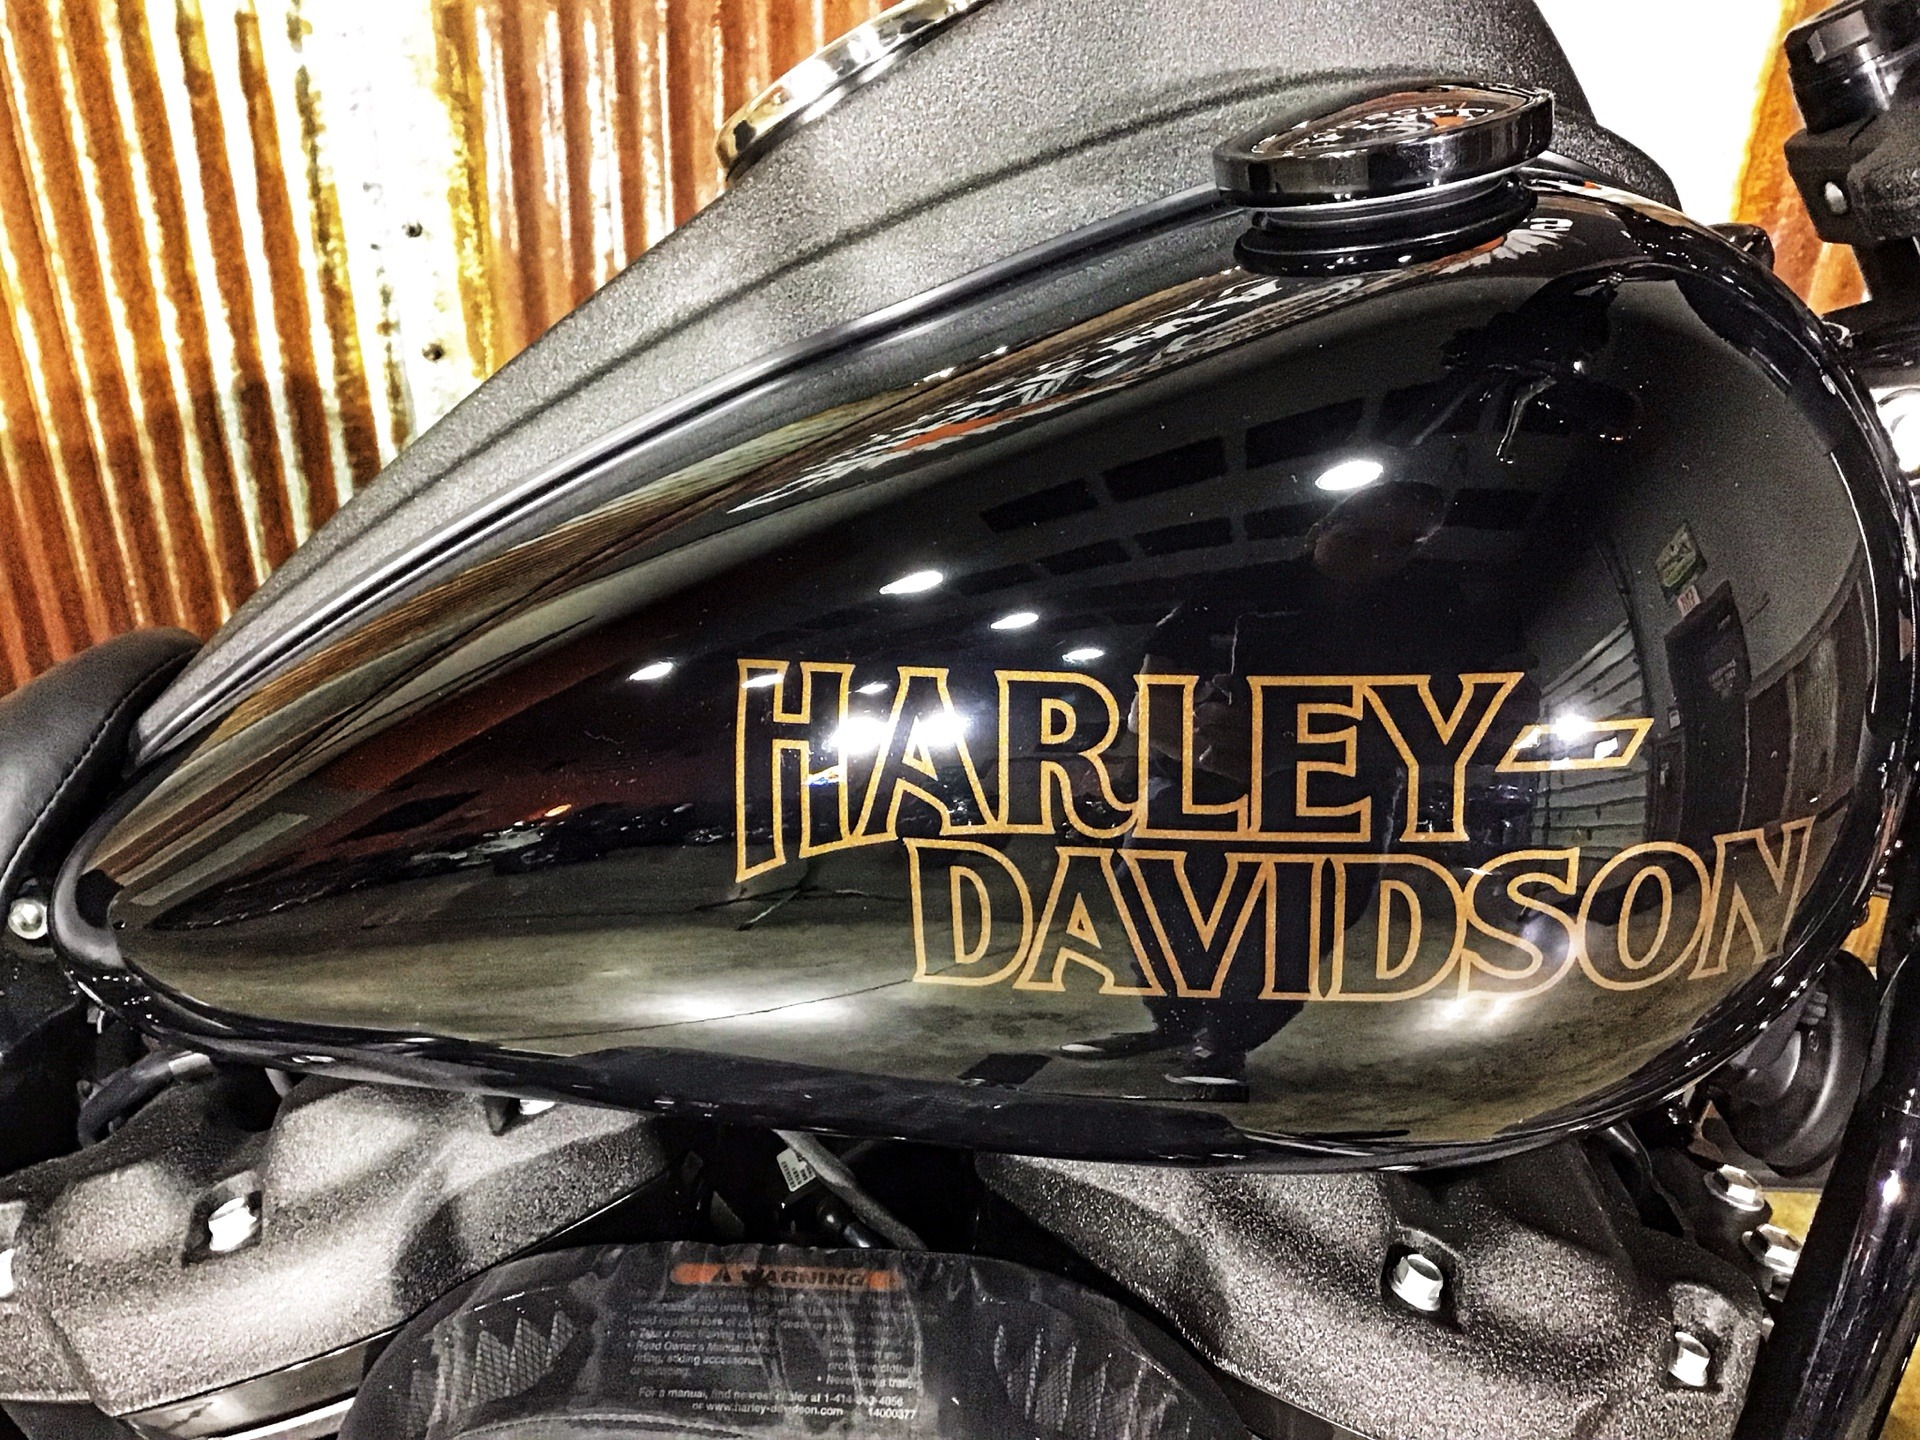 2020 Harley-Davidson Low Rider S in Chippewa Falls, Wisconsin - Photo 7